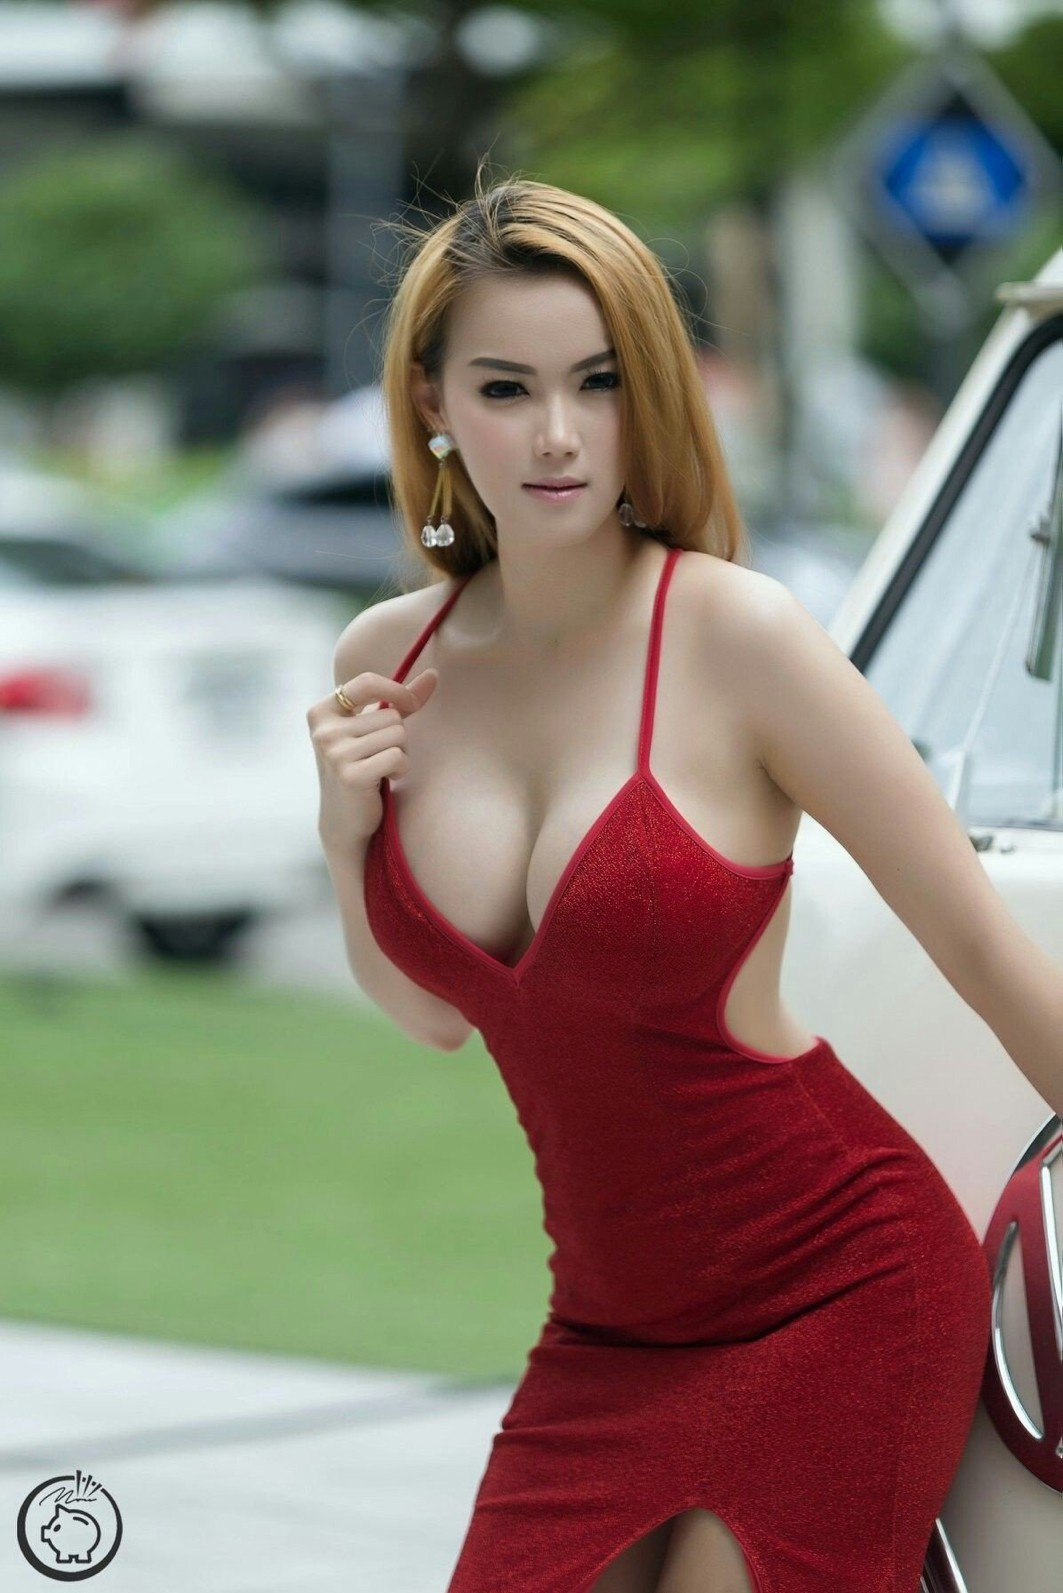 Outfit ideas busty tight dress, party dress, romper suit, photo shoot, brown hair, long hair